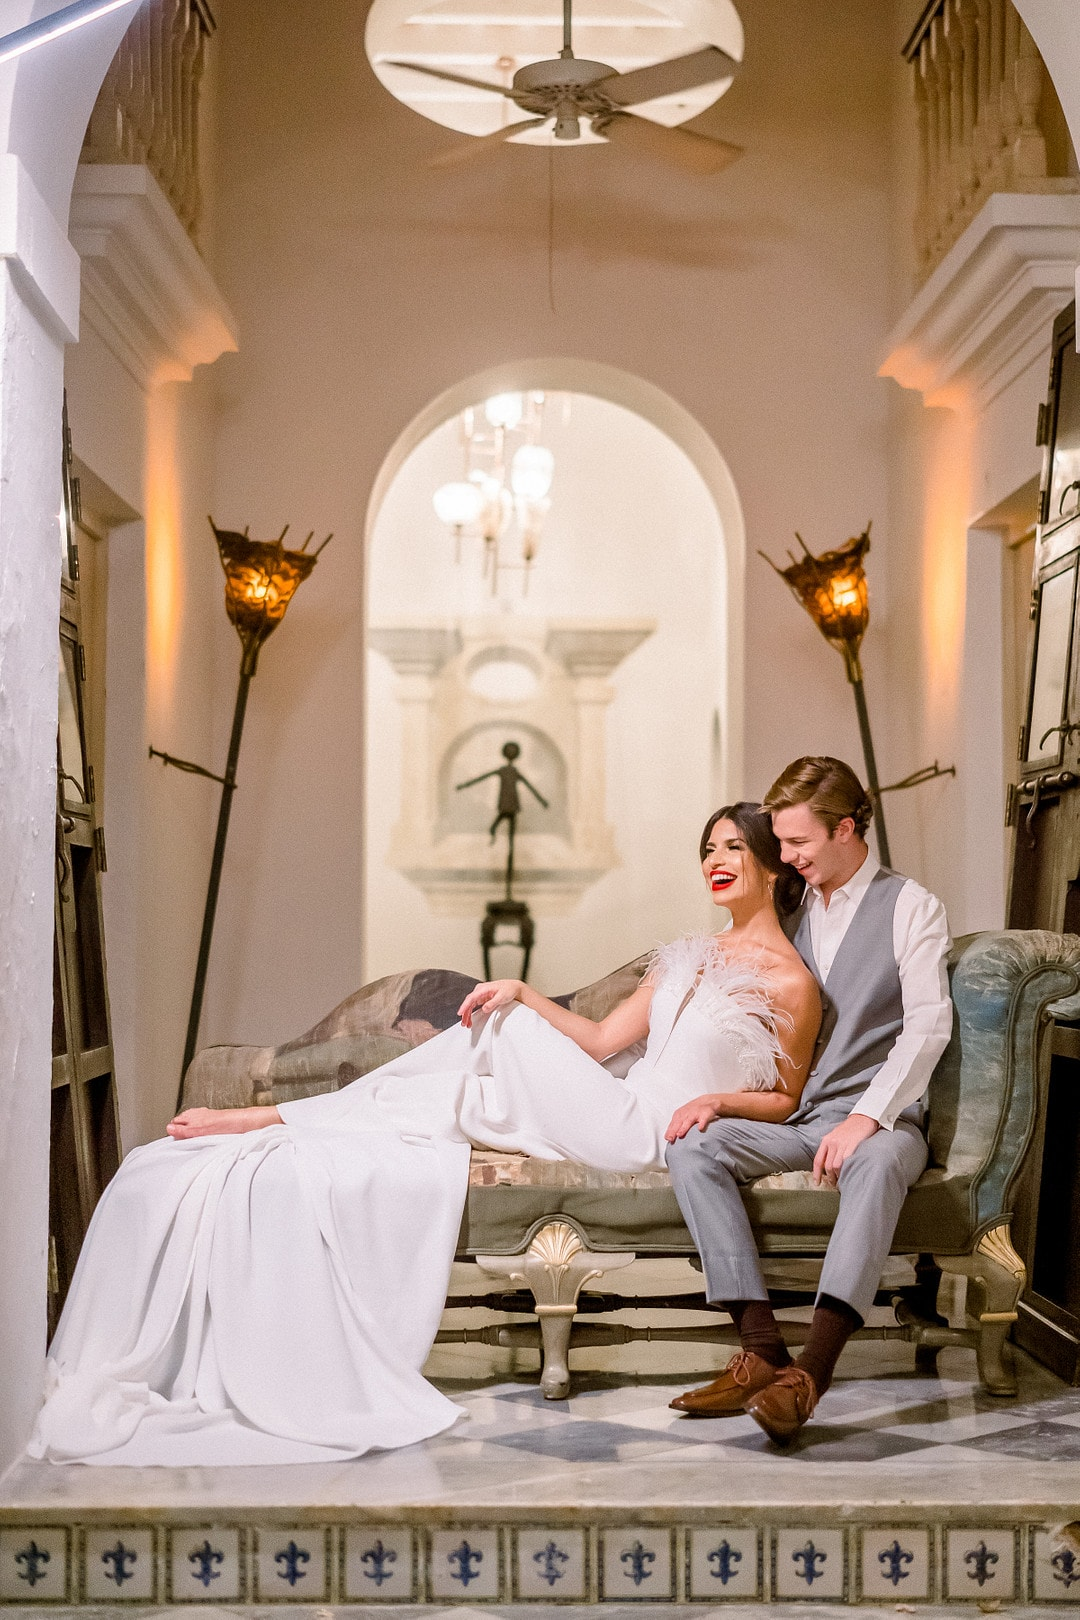 Puerto Rico Intimate Wedding Glamour: Classic Romance Meets Local Contemporary Chic, Photography by Jose Ruiz Photography